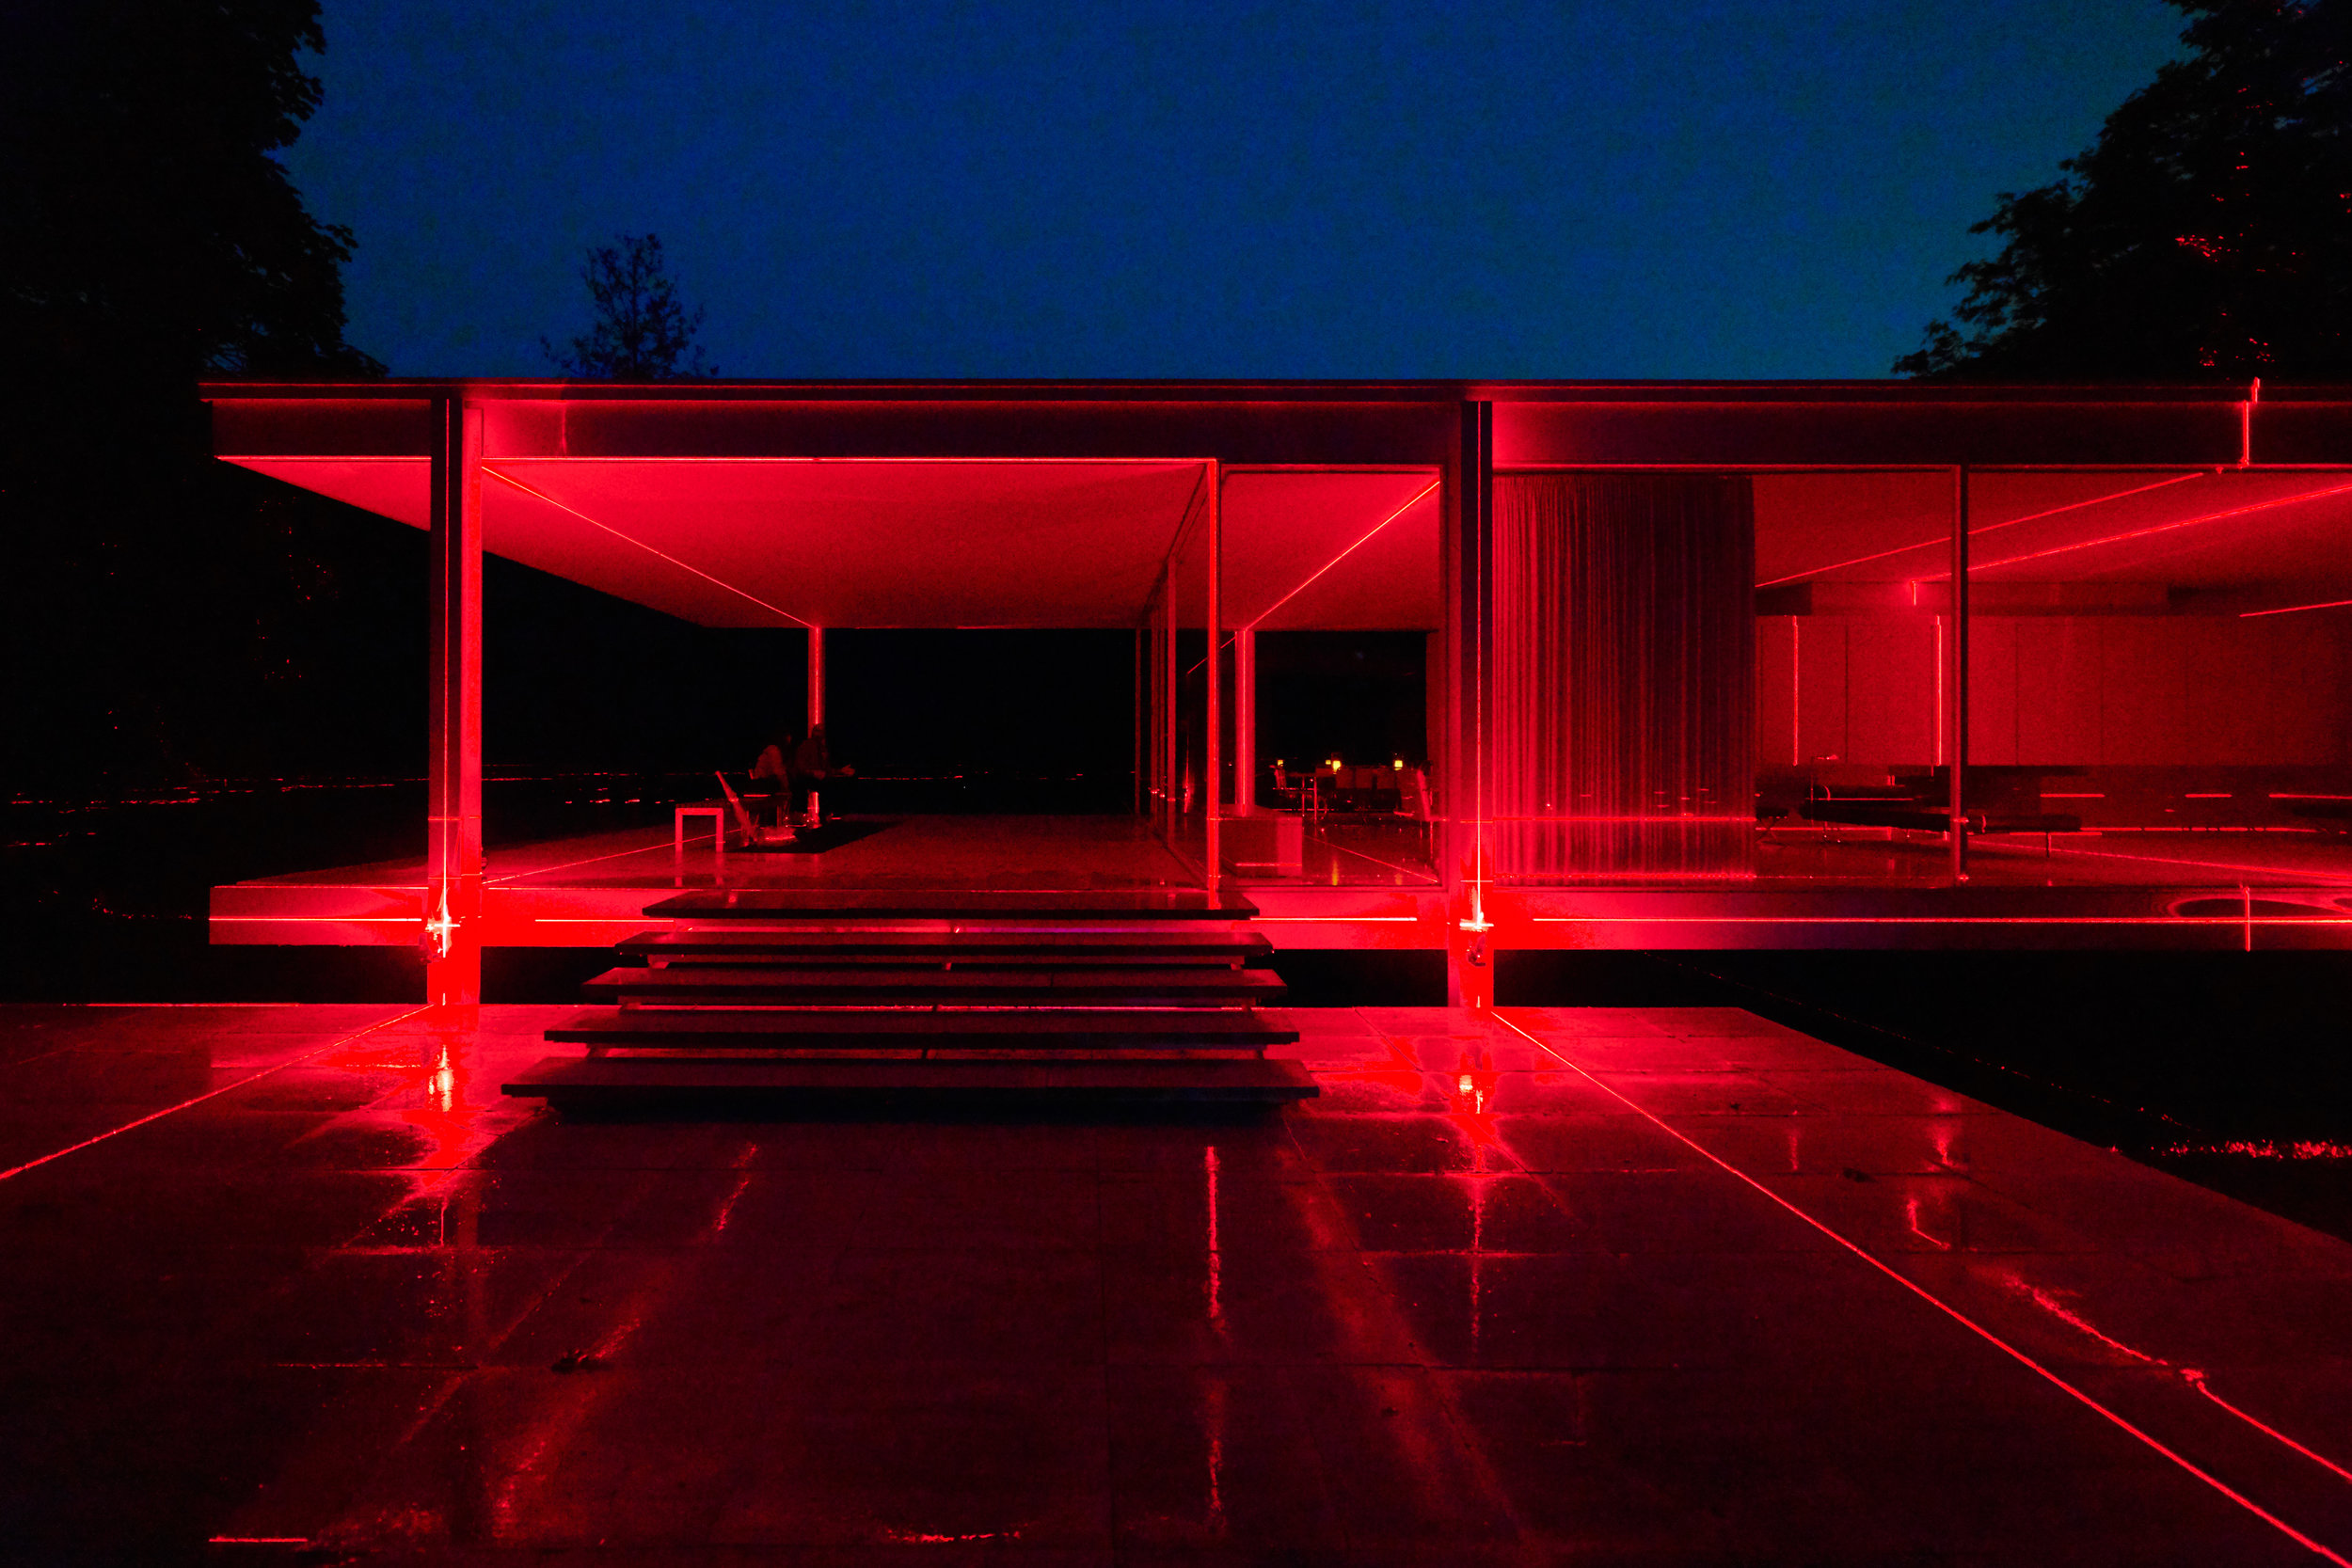 Architecture photography of  Luftwerk  and  Iker Gil' s art installation at Mies van der Rohe's  Farnsworth House